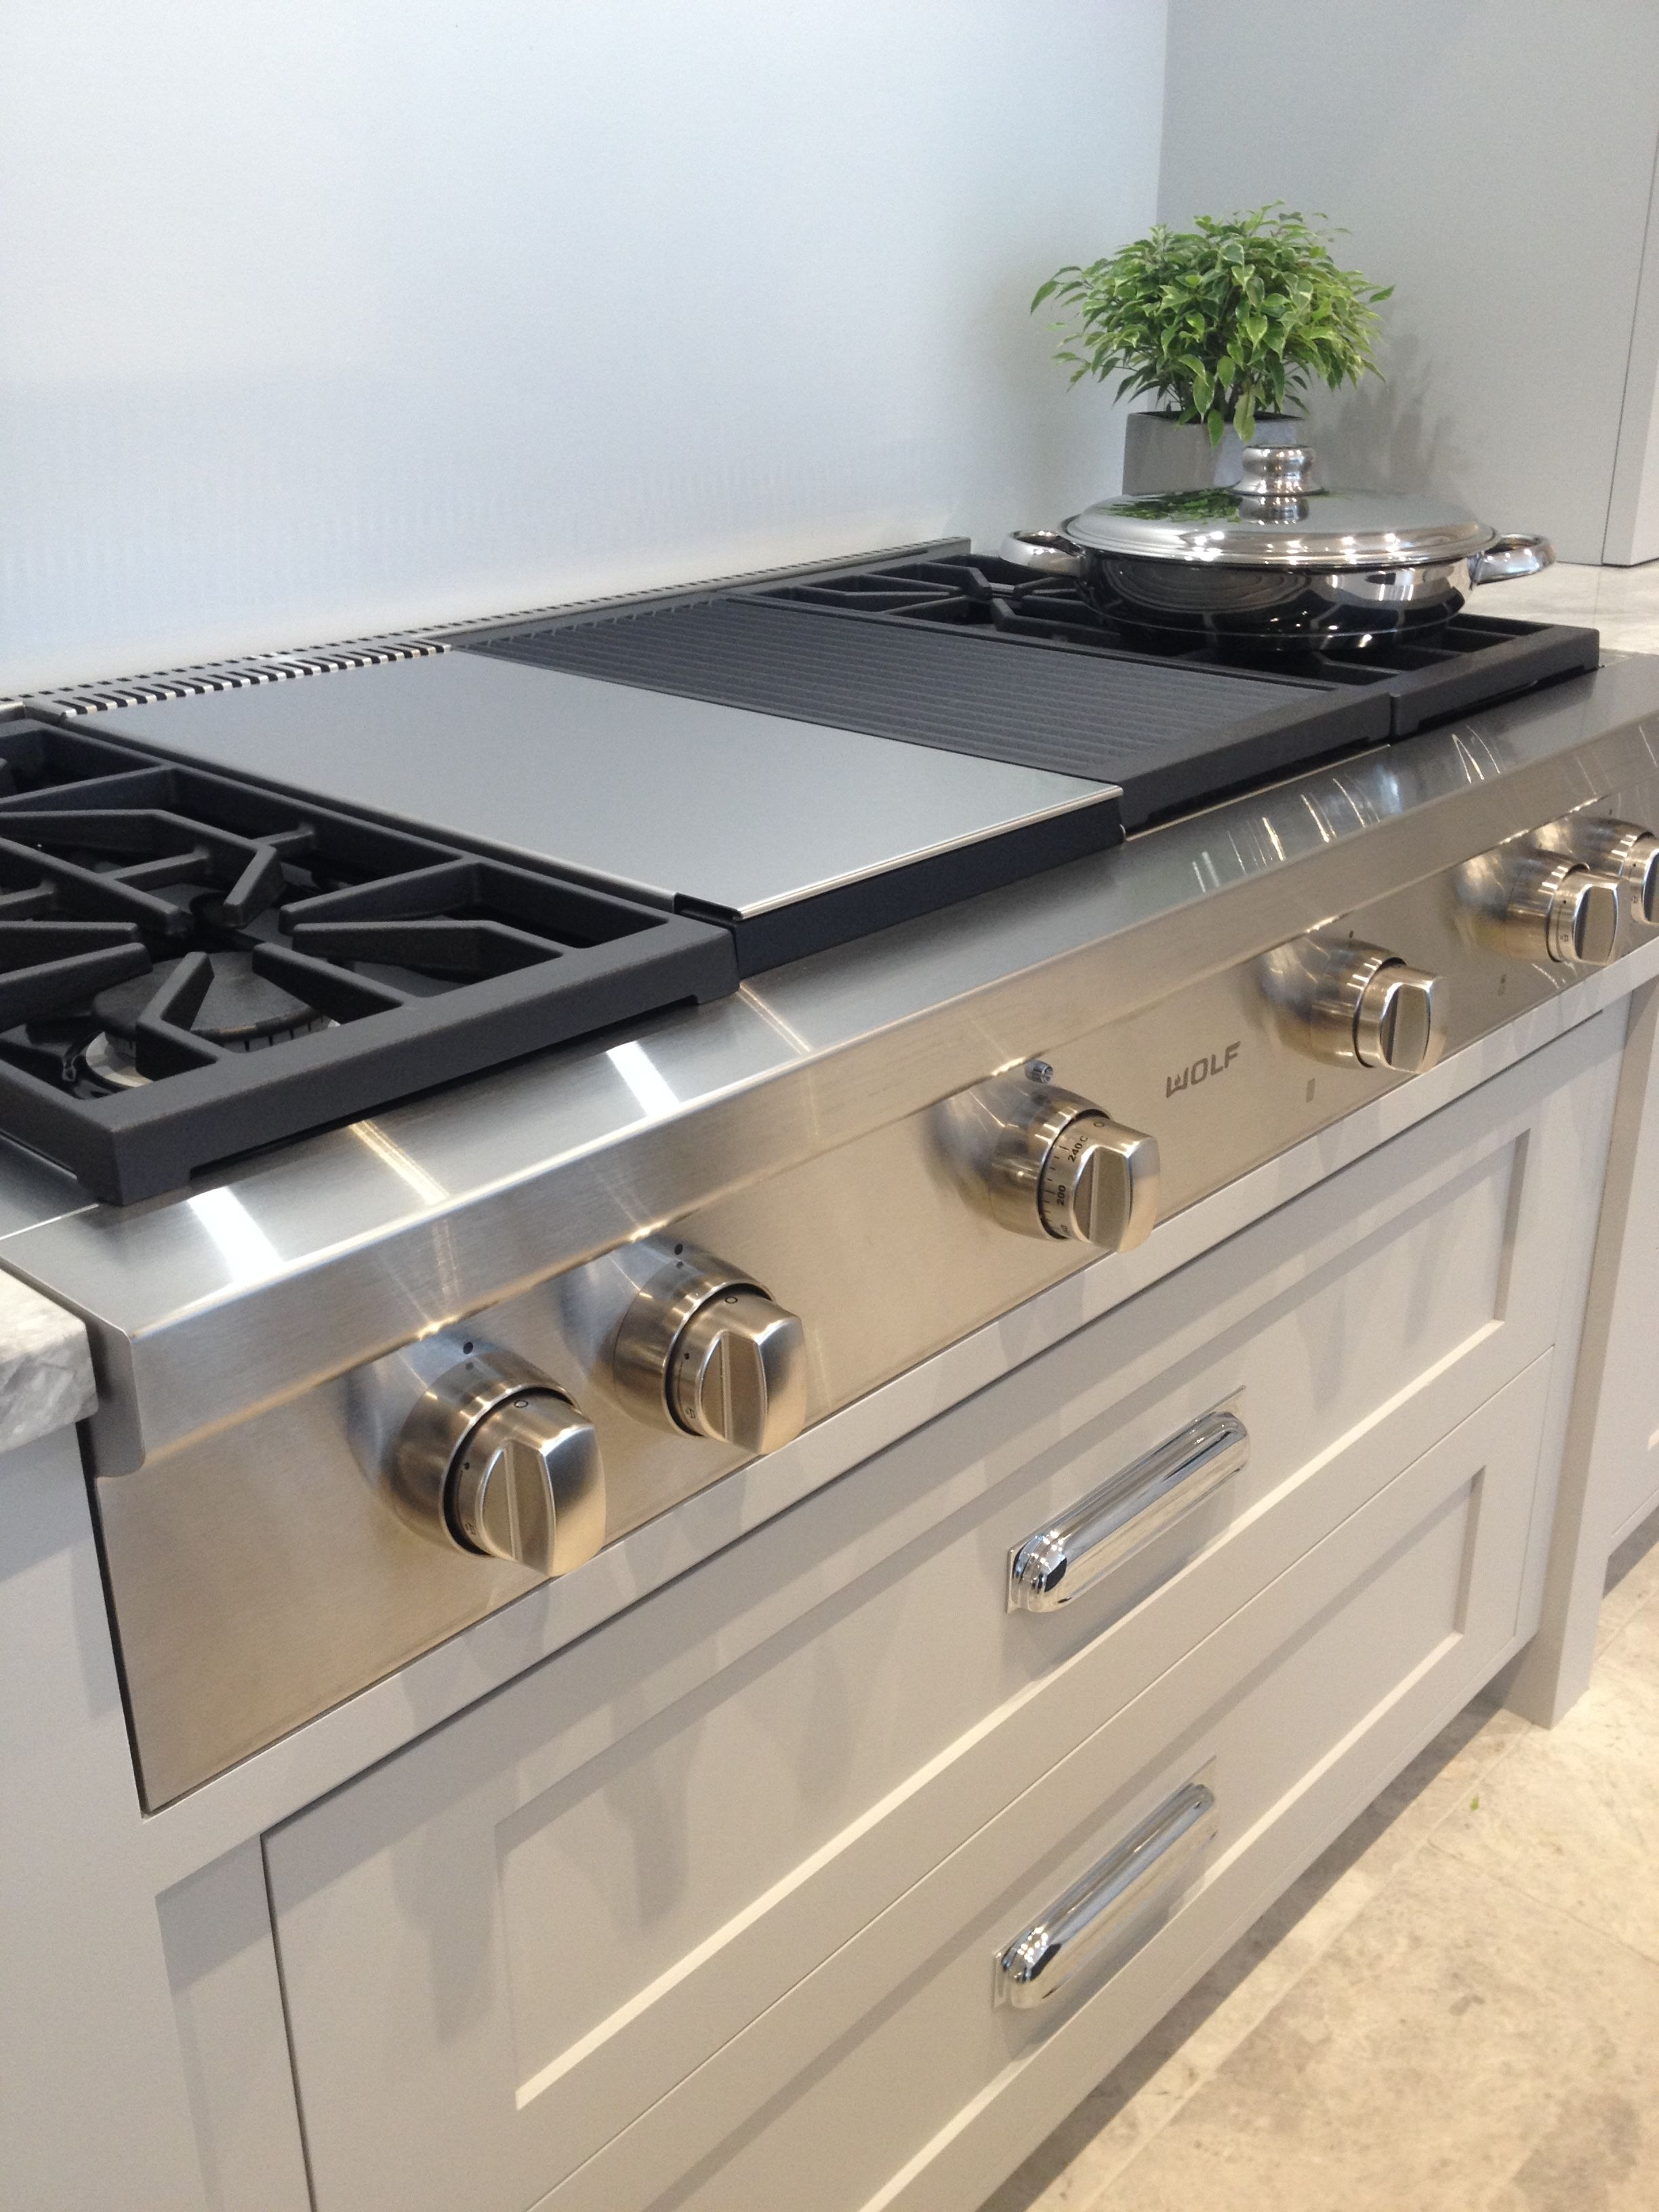 Sub Zero Wolf Range Cook Top On Display At Our Showroom